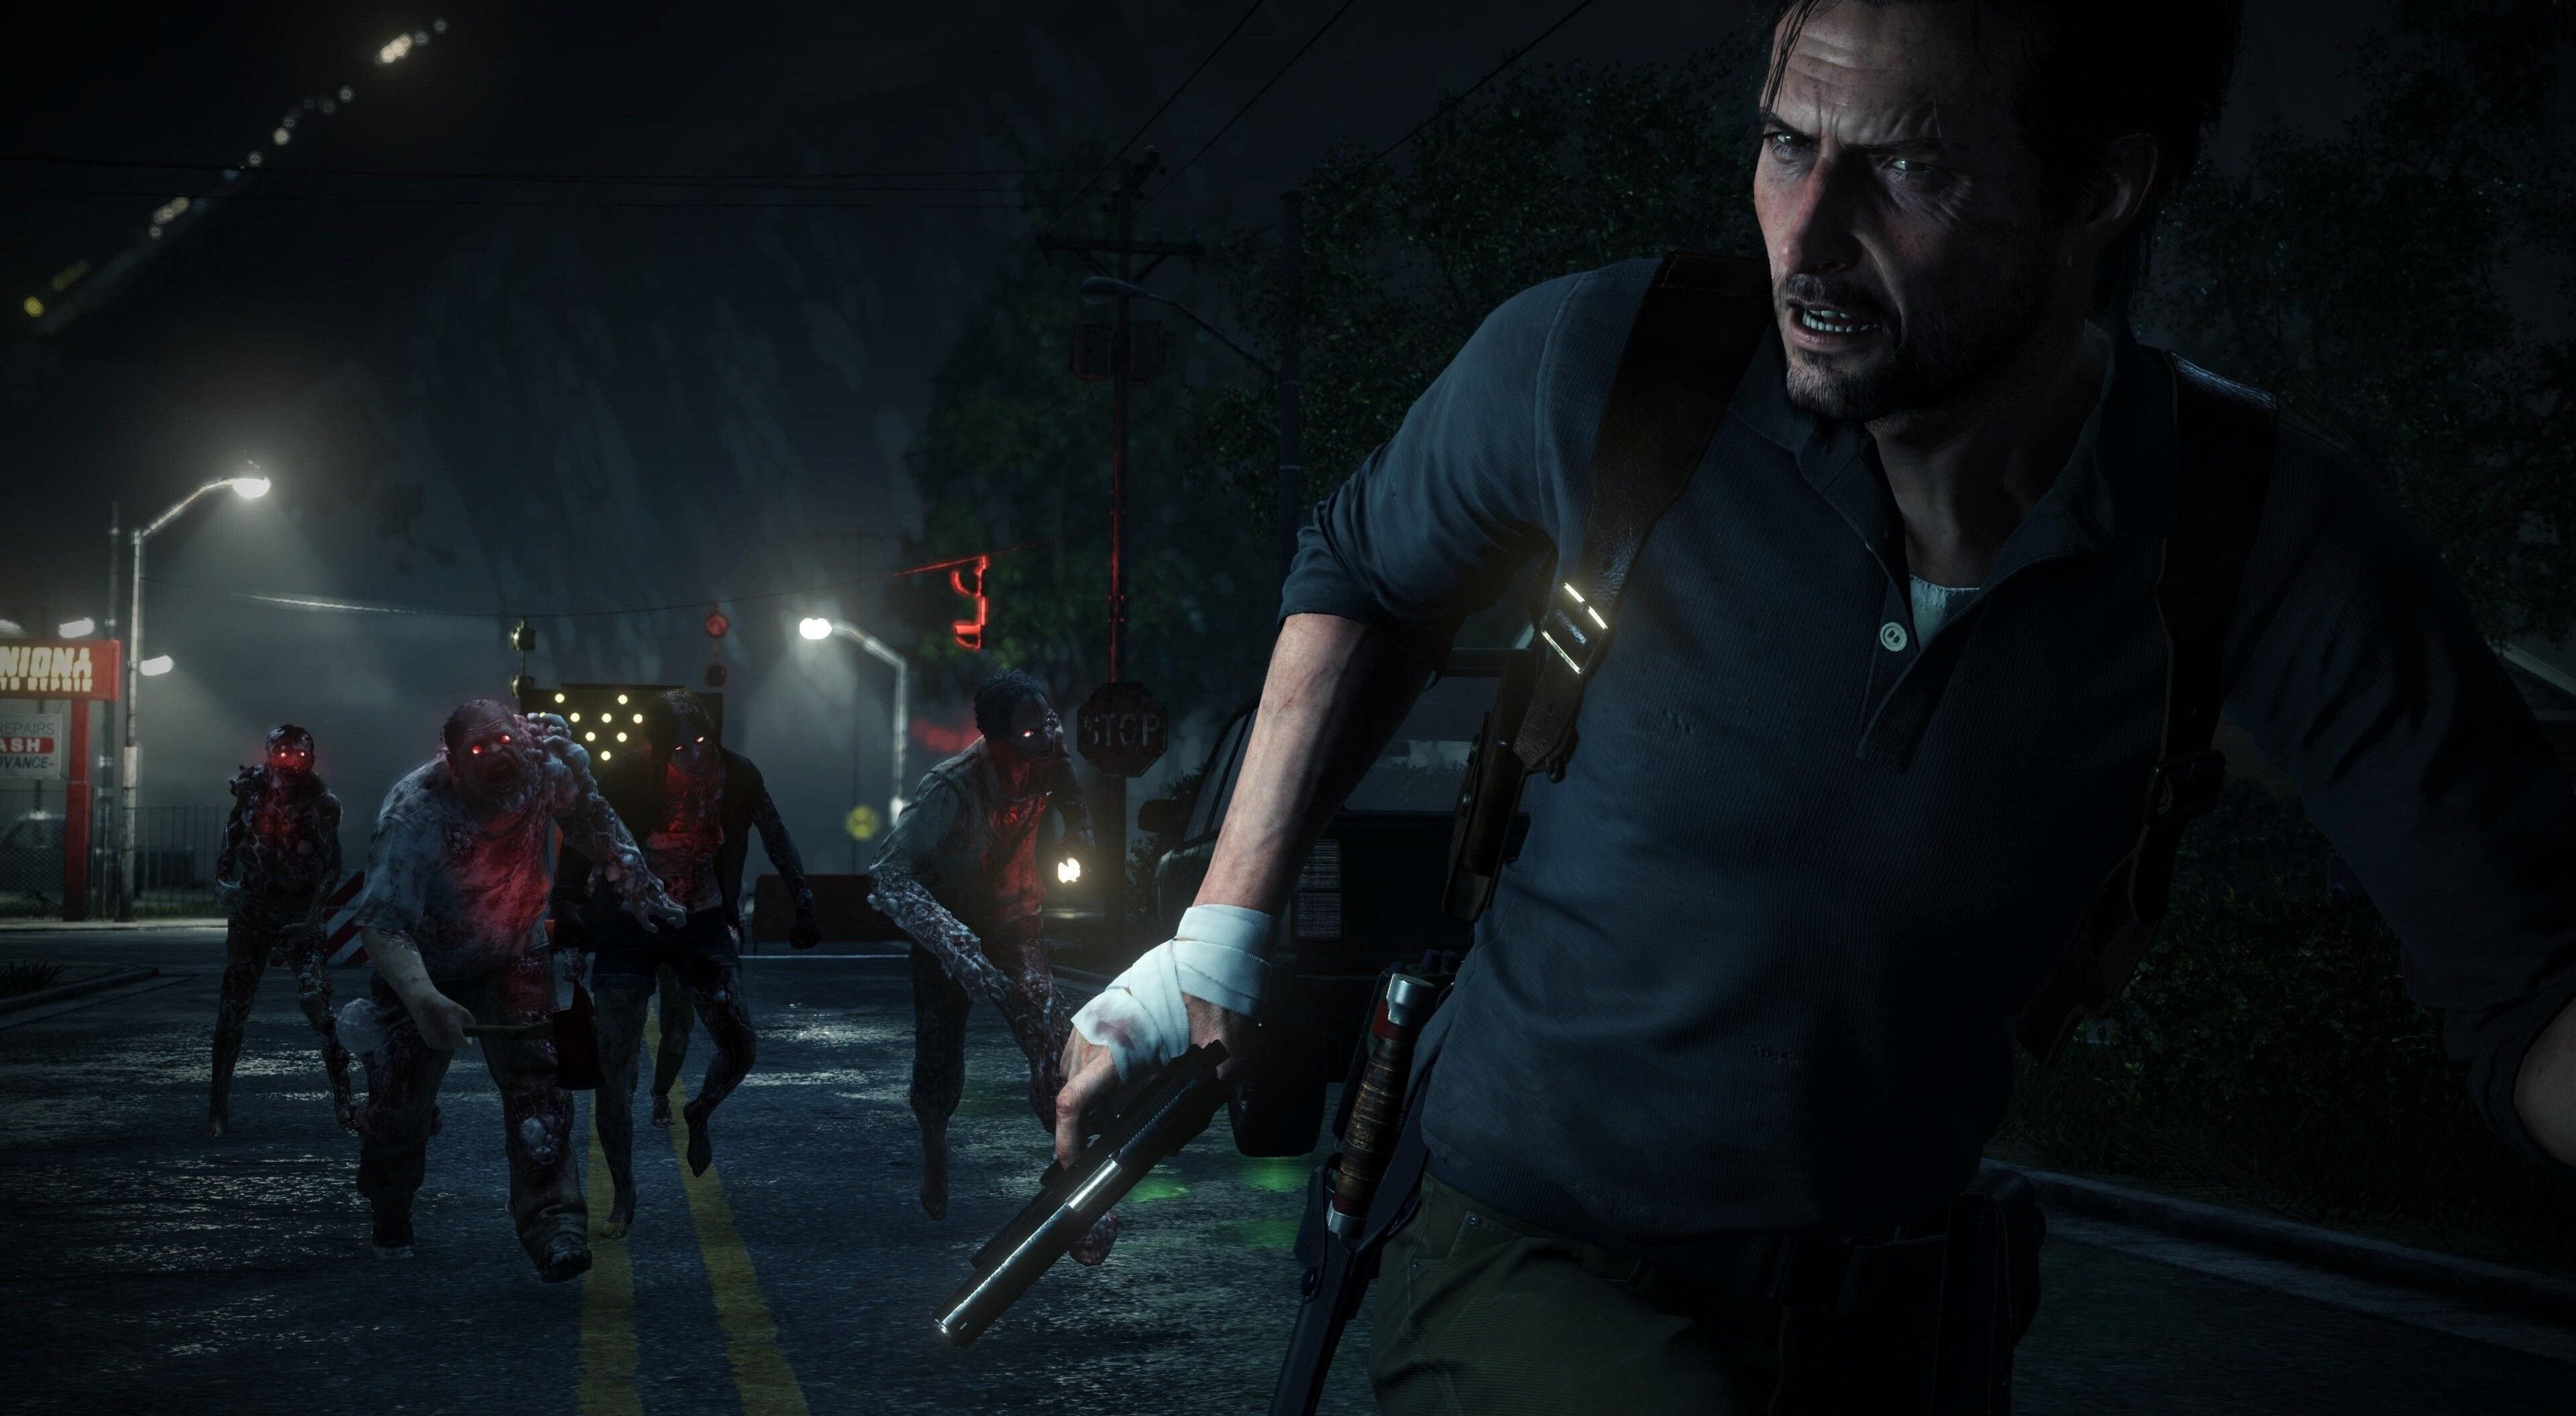 3840x2111 The Evil Within 2 4k Wallpaper Windows